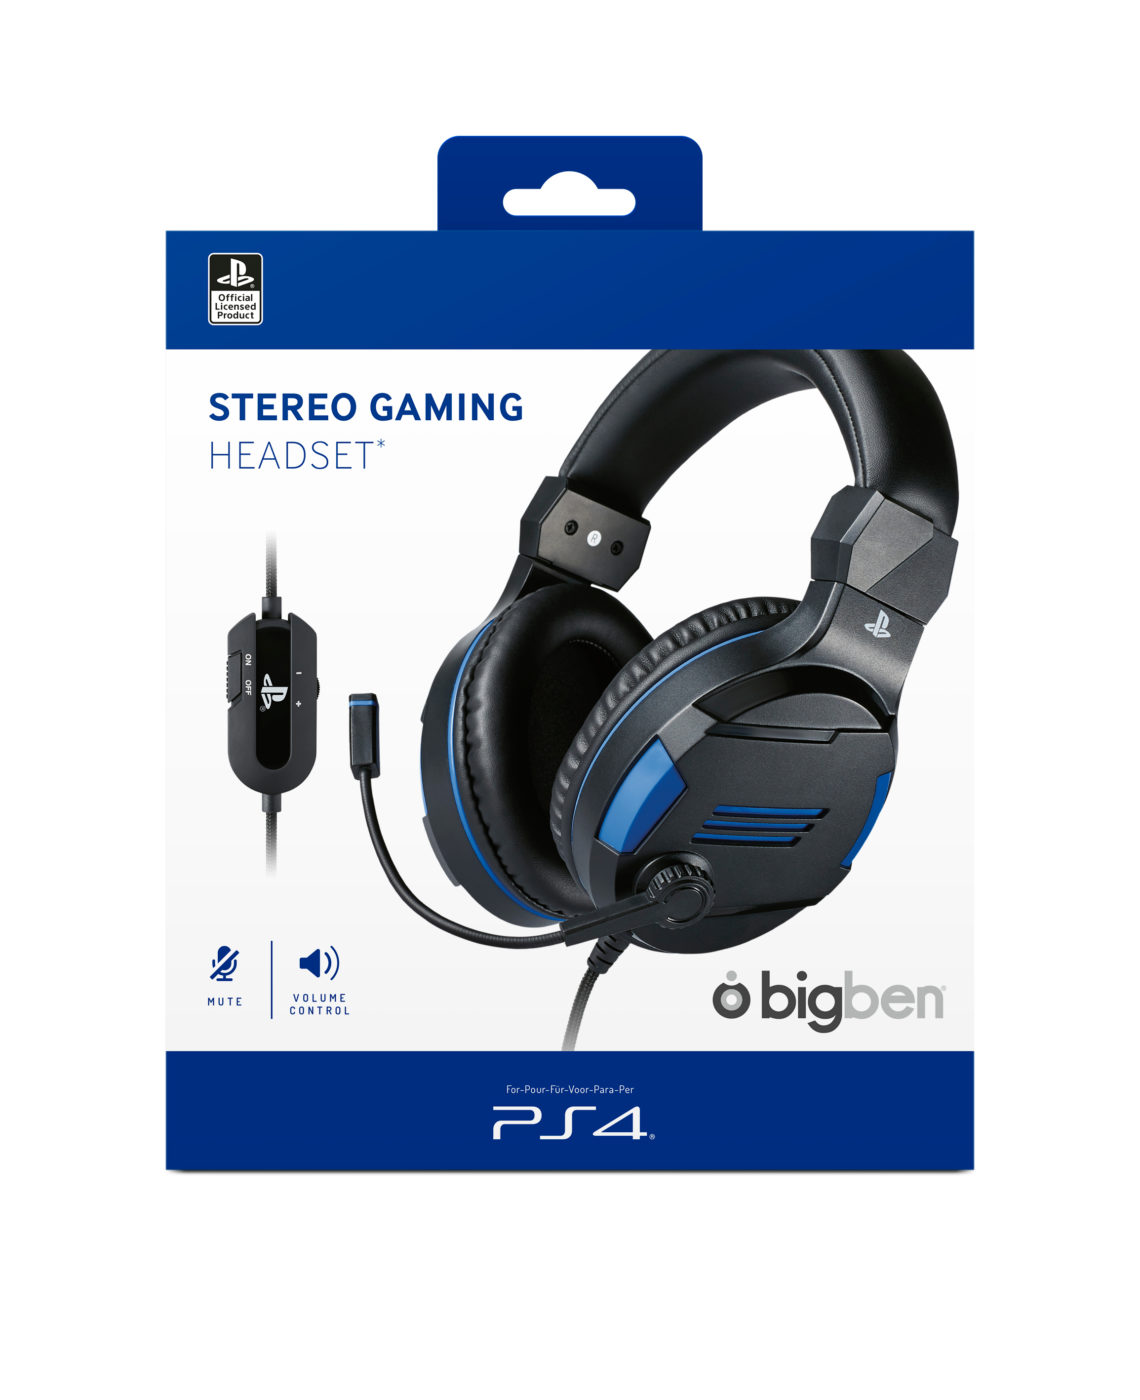 Strereo gaming headset for PS4™, PC, MAC and mobile devices